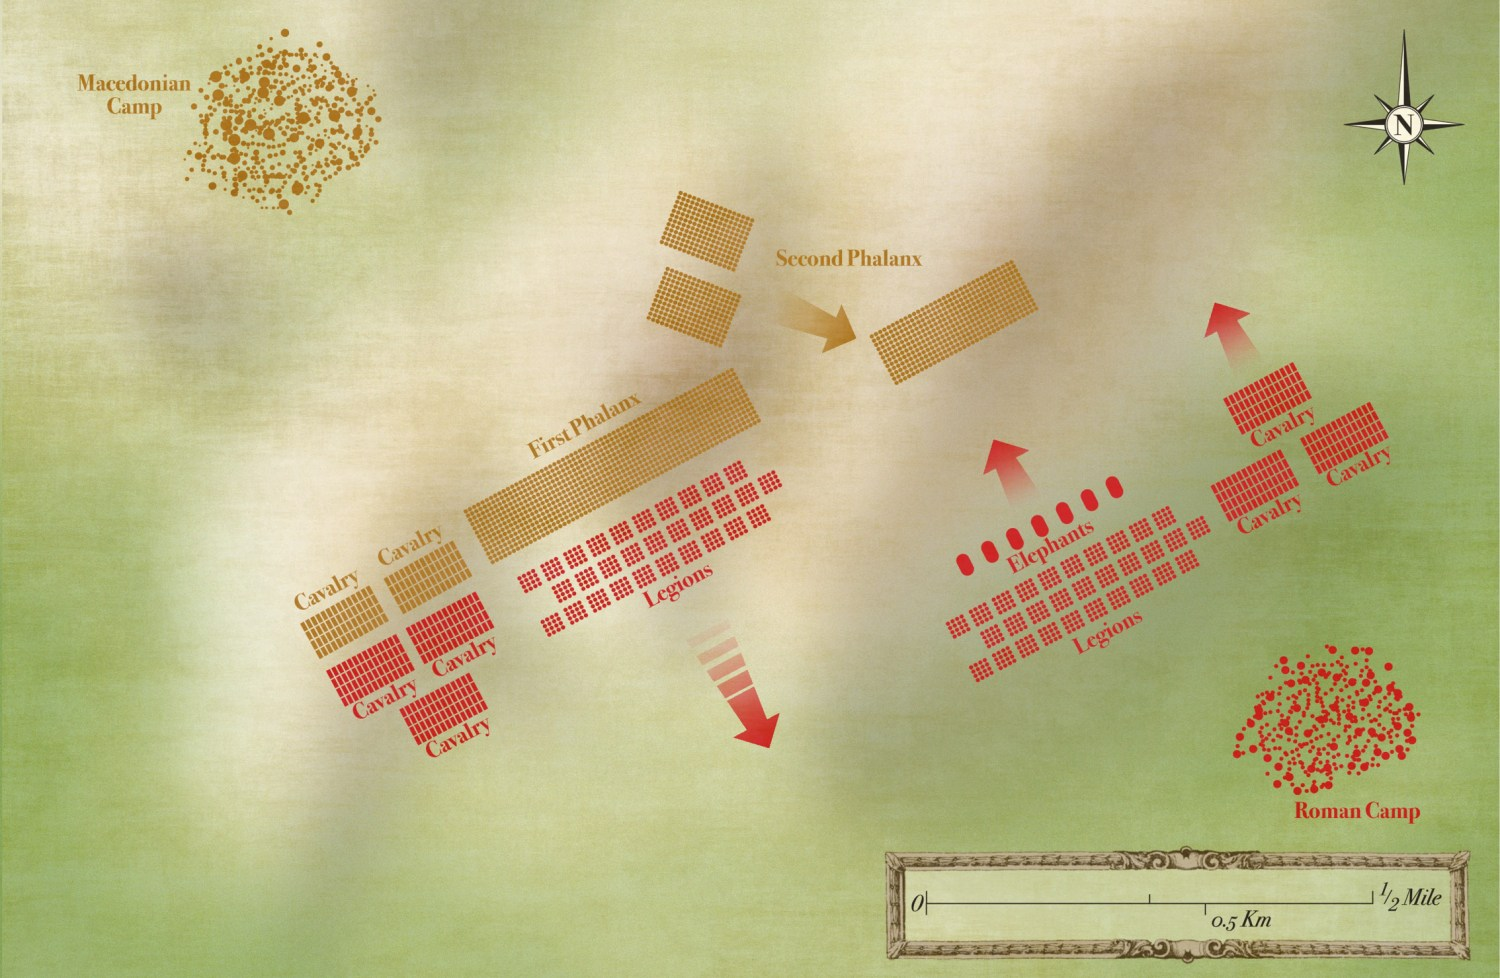 below The Battle of Cynoscephalae: second phase. As the Roman left falls back before the advance of the Macedonian phalanx, the Roman commander launches a massed counter-attack on the right, led by elephants, just as the other half of the Macedonian army also comes into action on that wing.